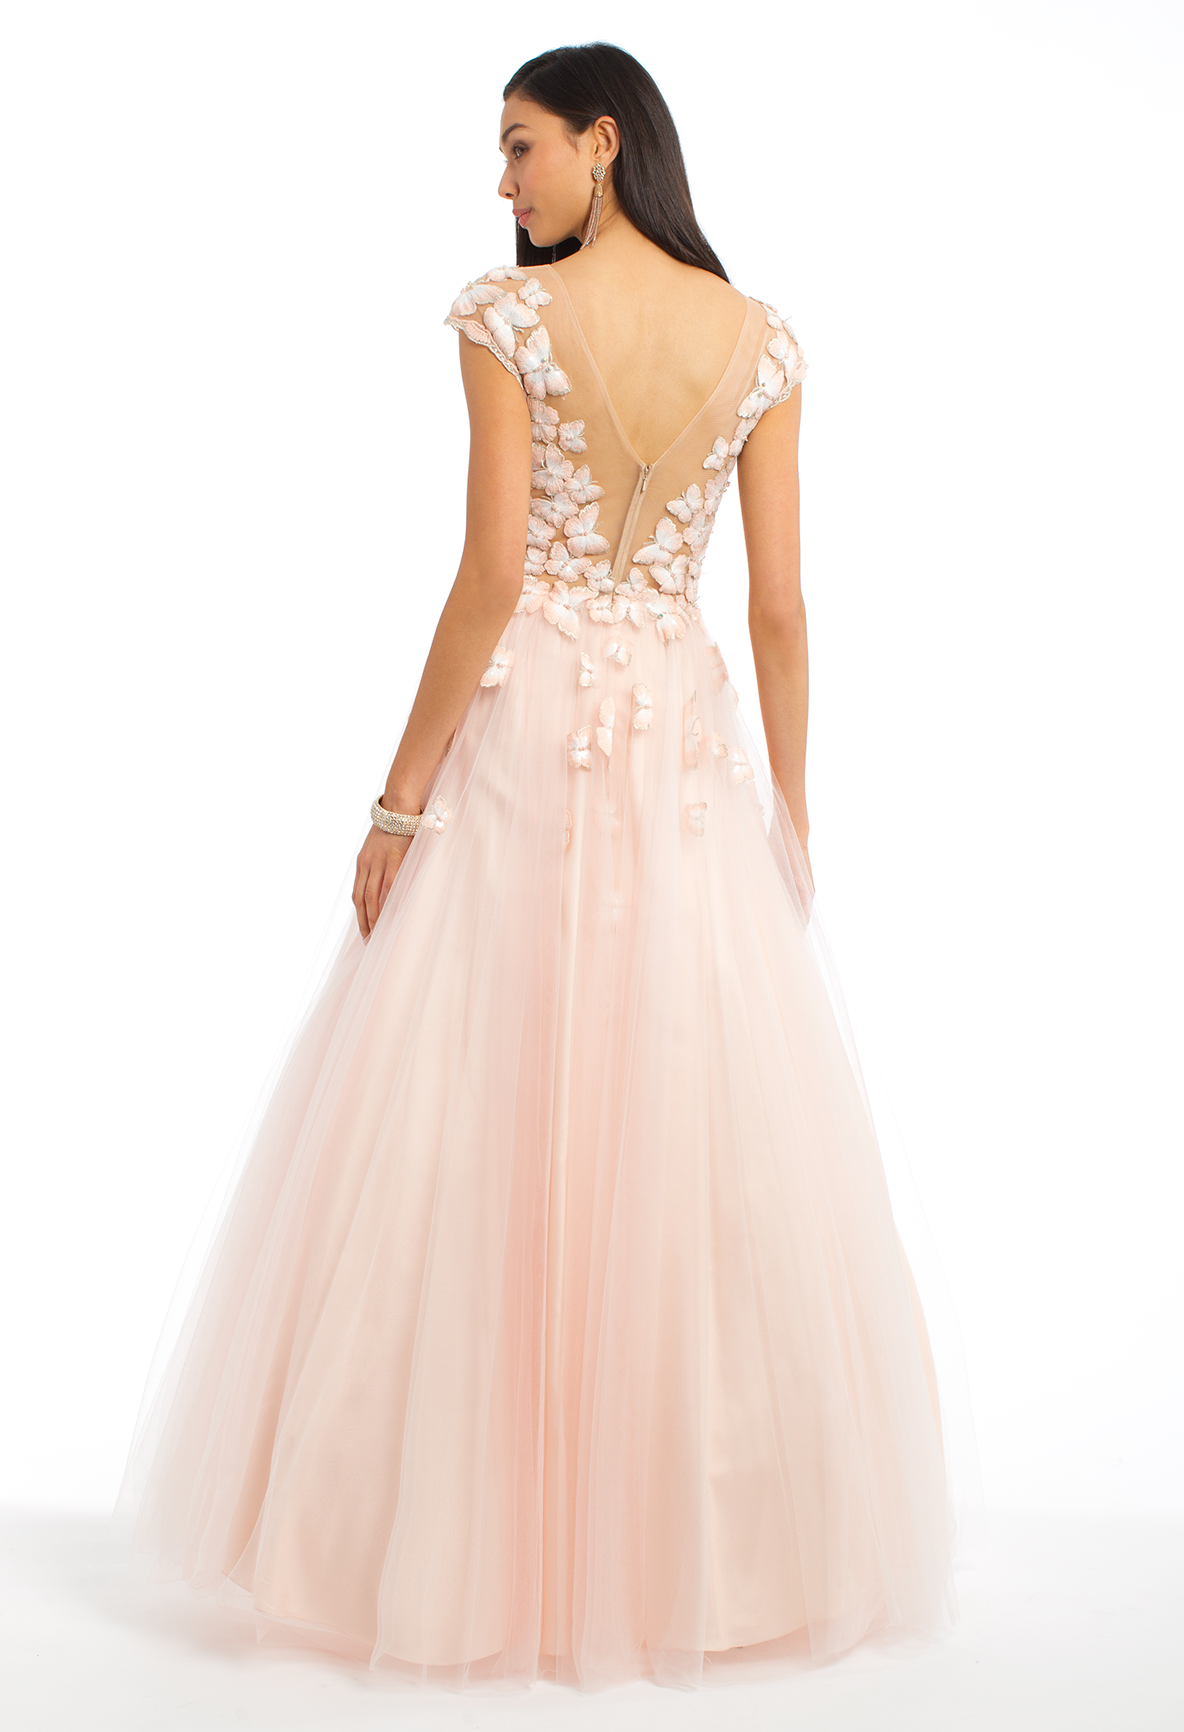 e417f5e80d Prepare to feel like a princess all evening in this ball gown dress! The  features of this dreamy evening gown include an illusion neckline with cap  sleeves